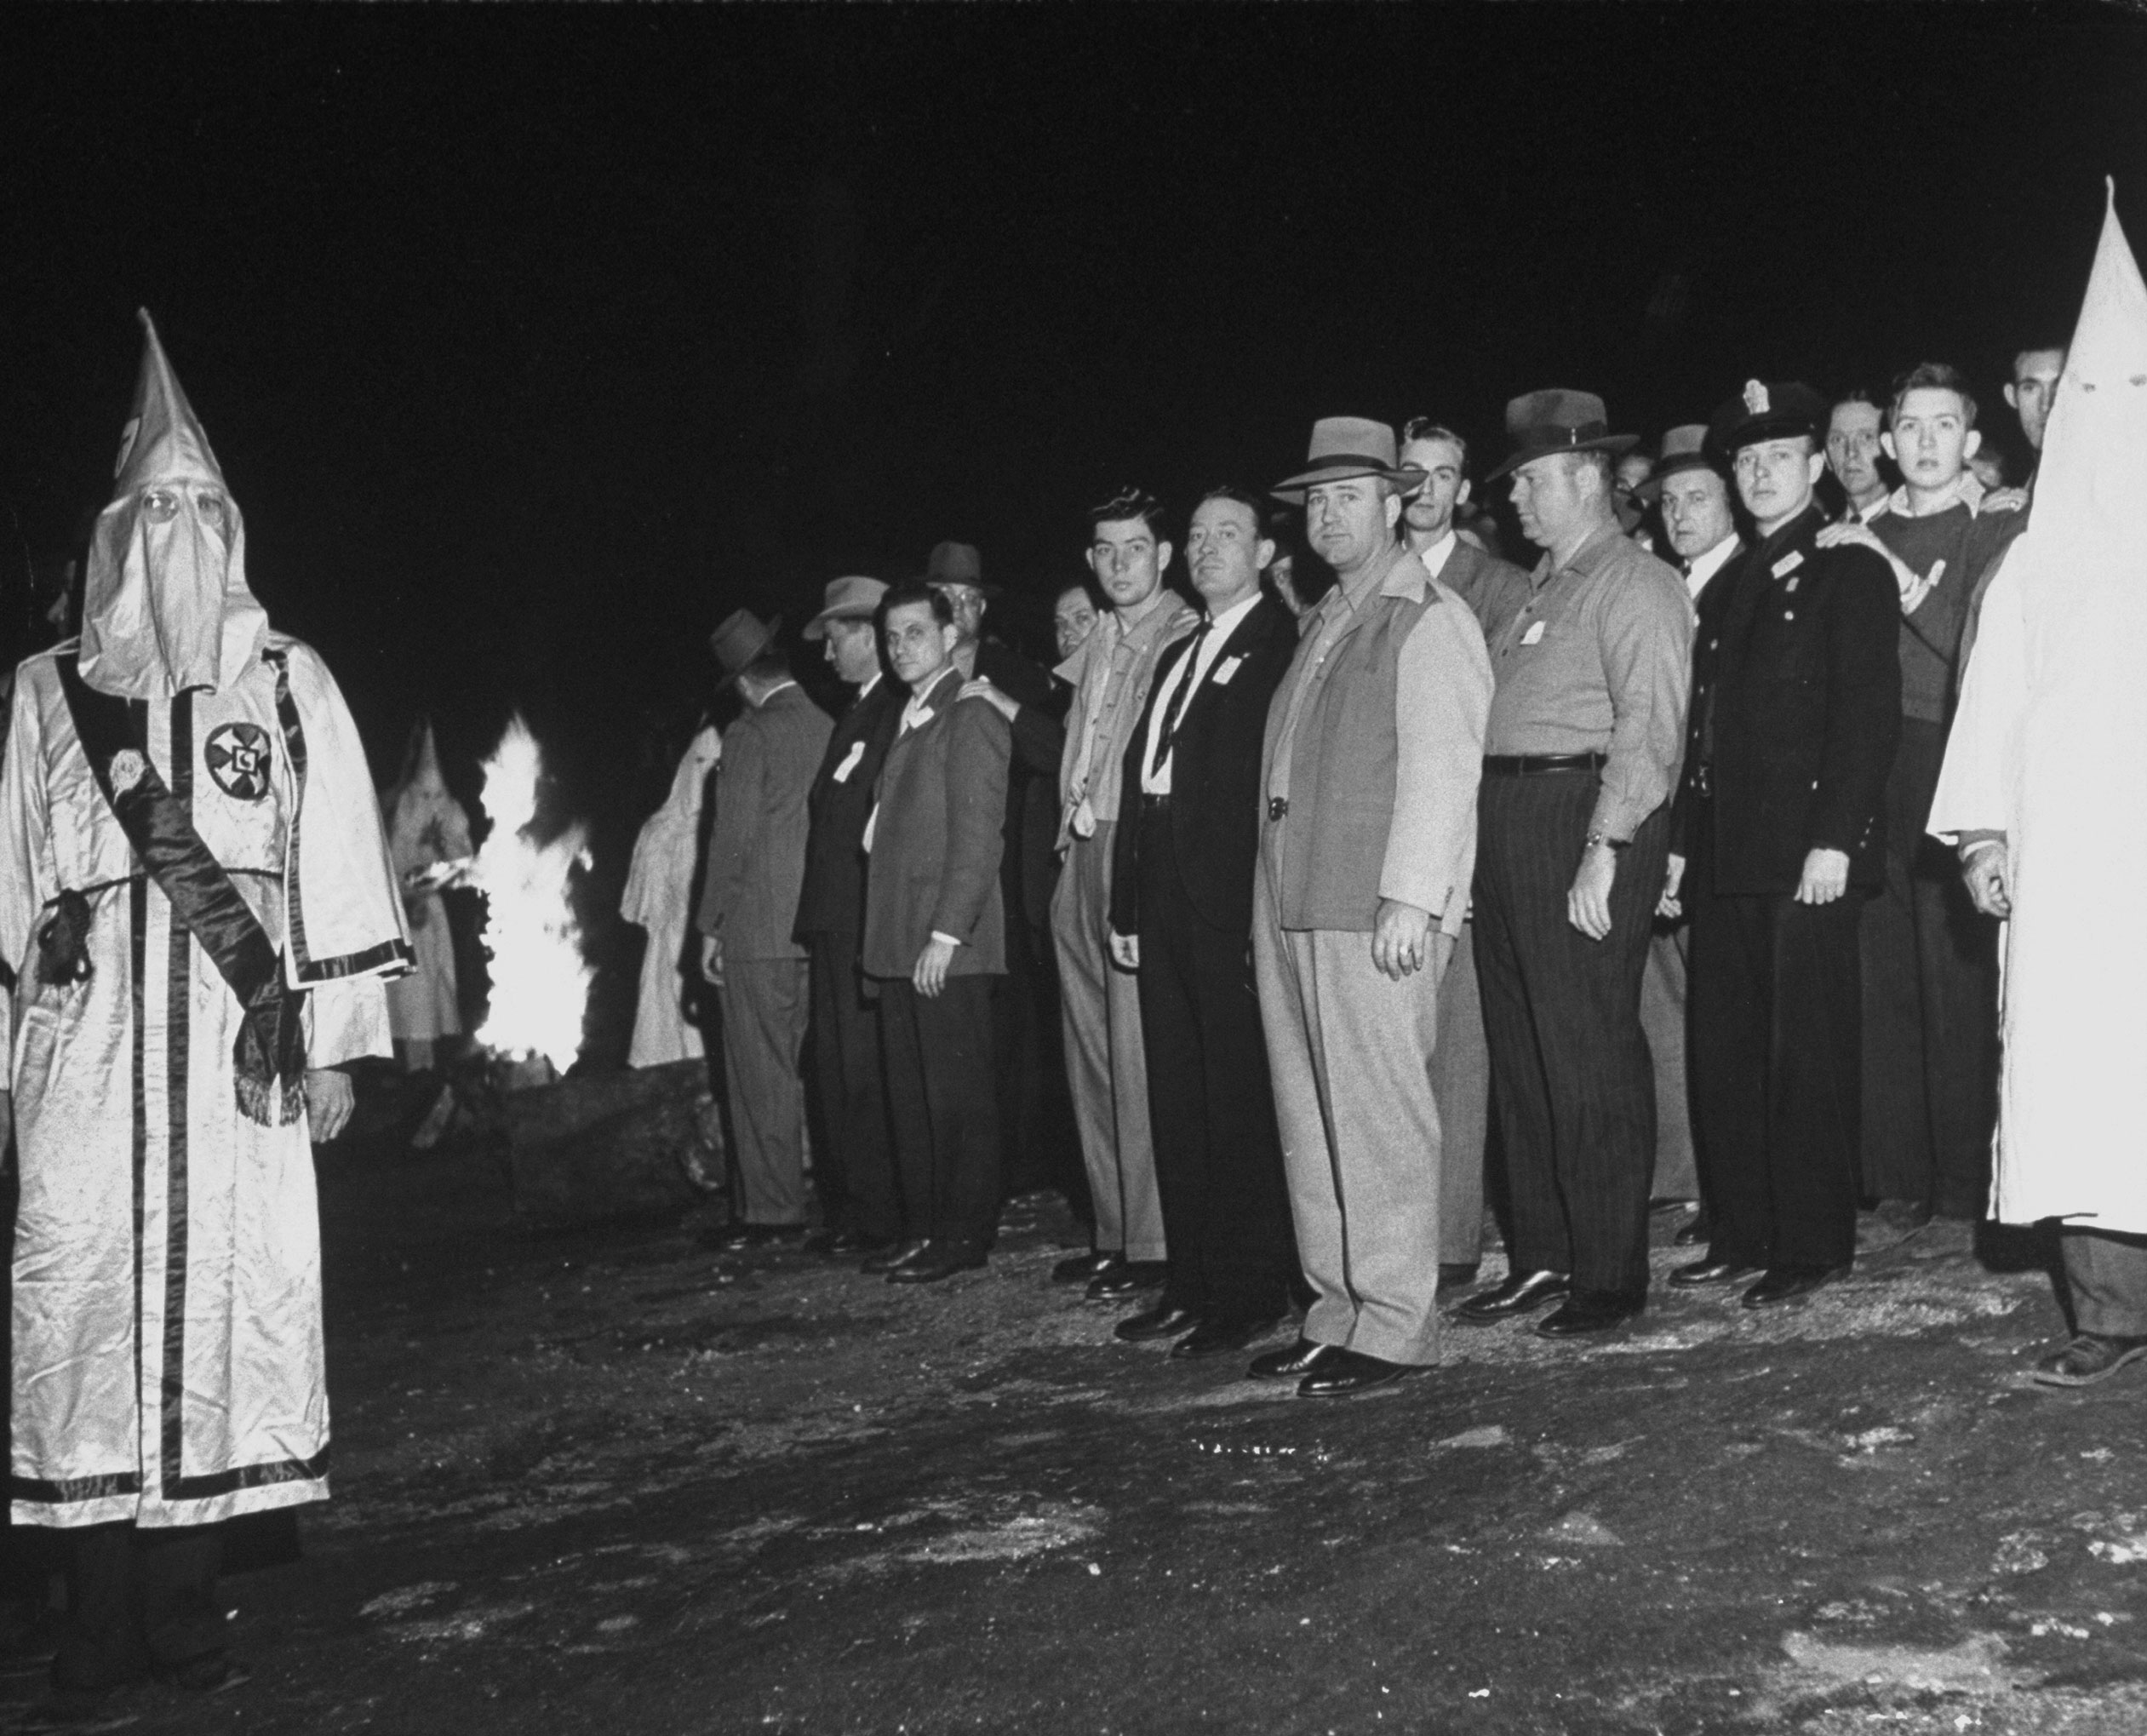 Klan initiates (including some Atlanta policemen) stand before a burning cross during a ritual in Georgia, 1946.